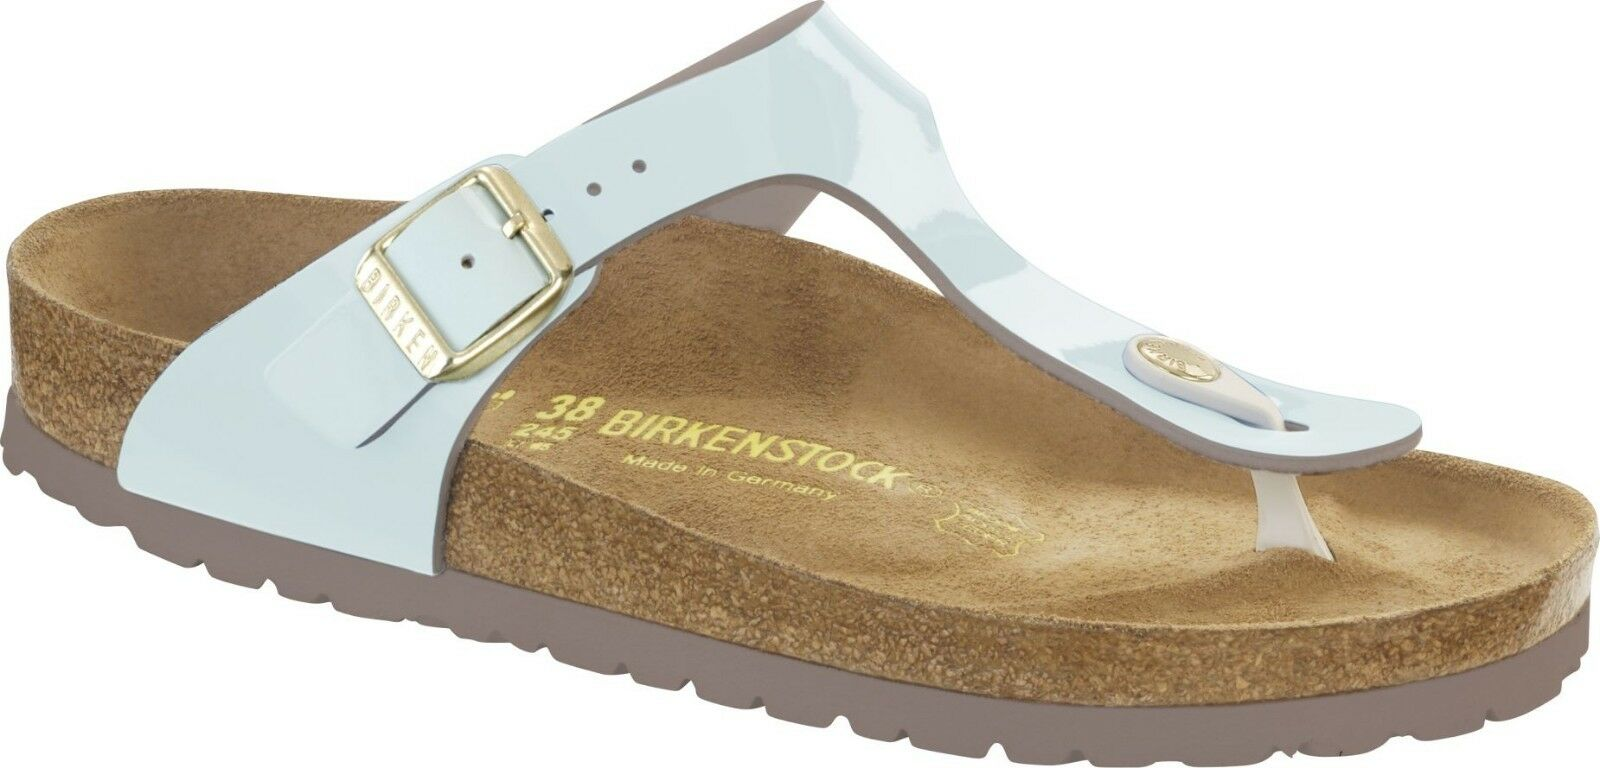 Birkenstock Cream Gizeh Two Tone Water Cream Birkenstock Größe 35-42 Fußbett normal 826ee3